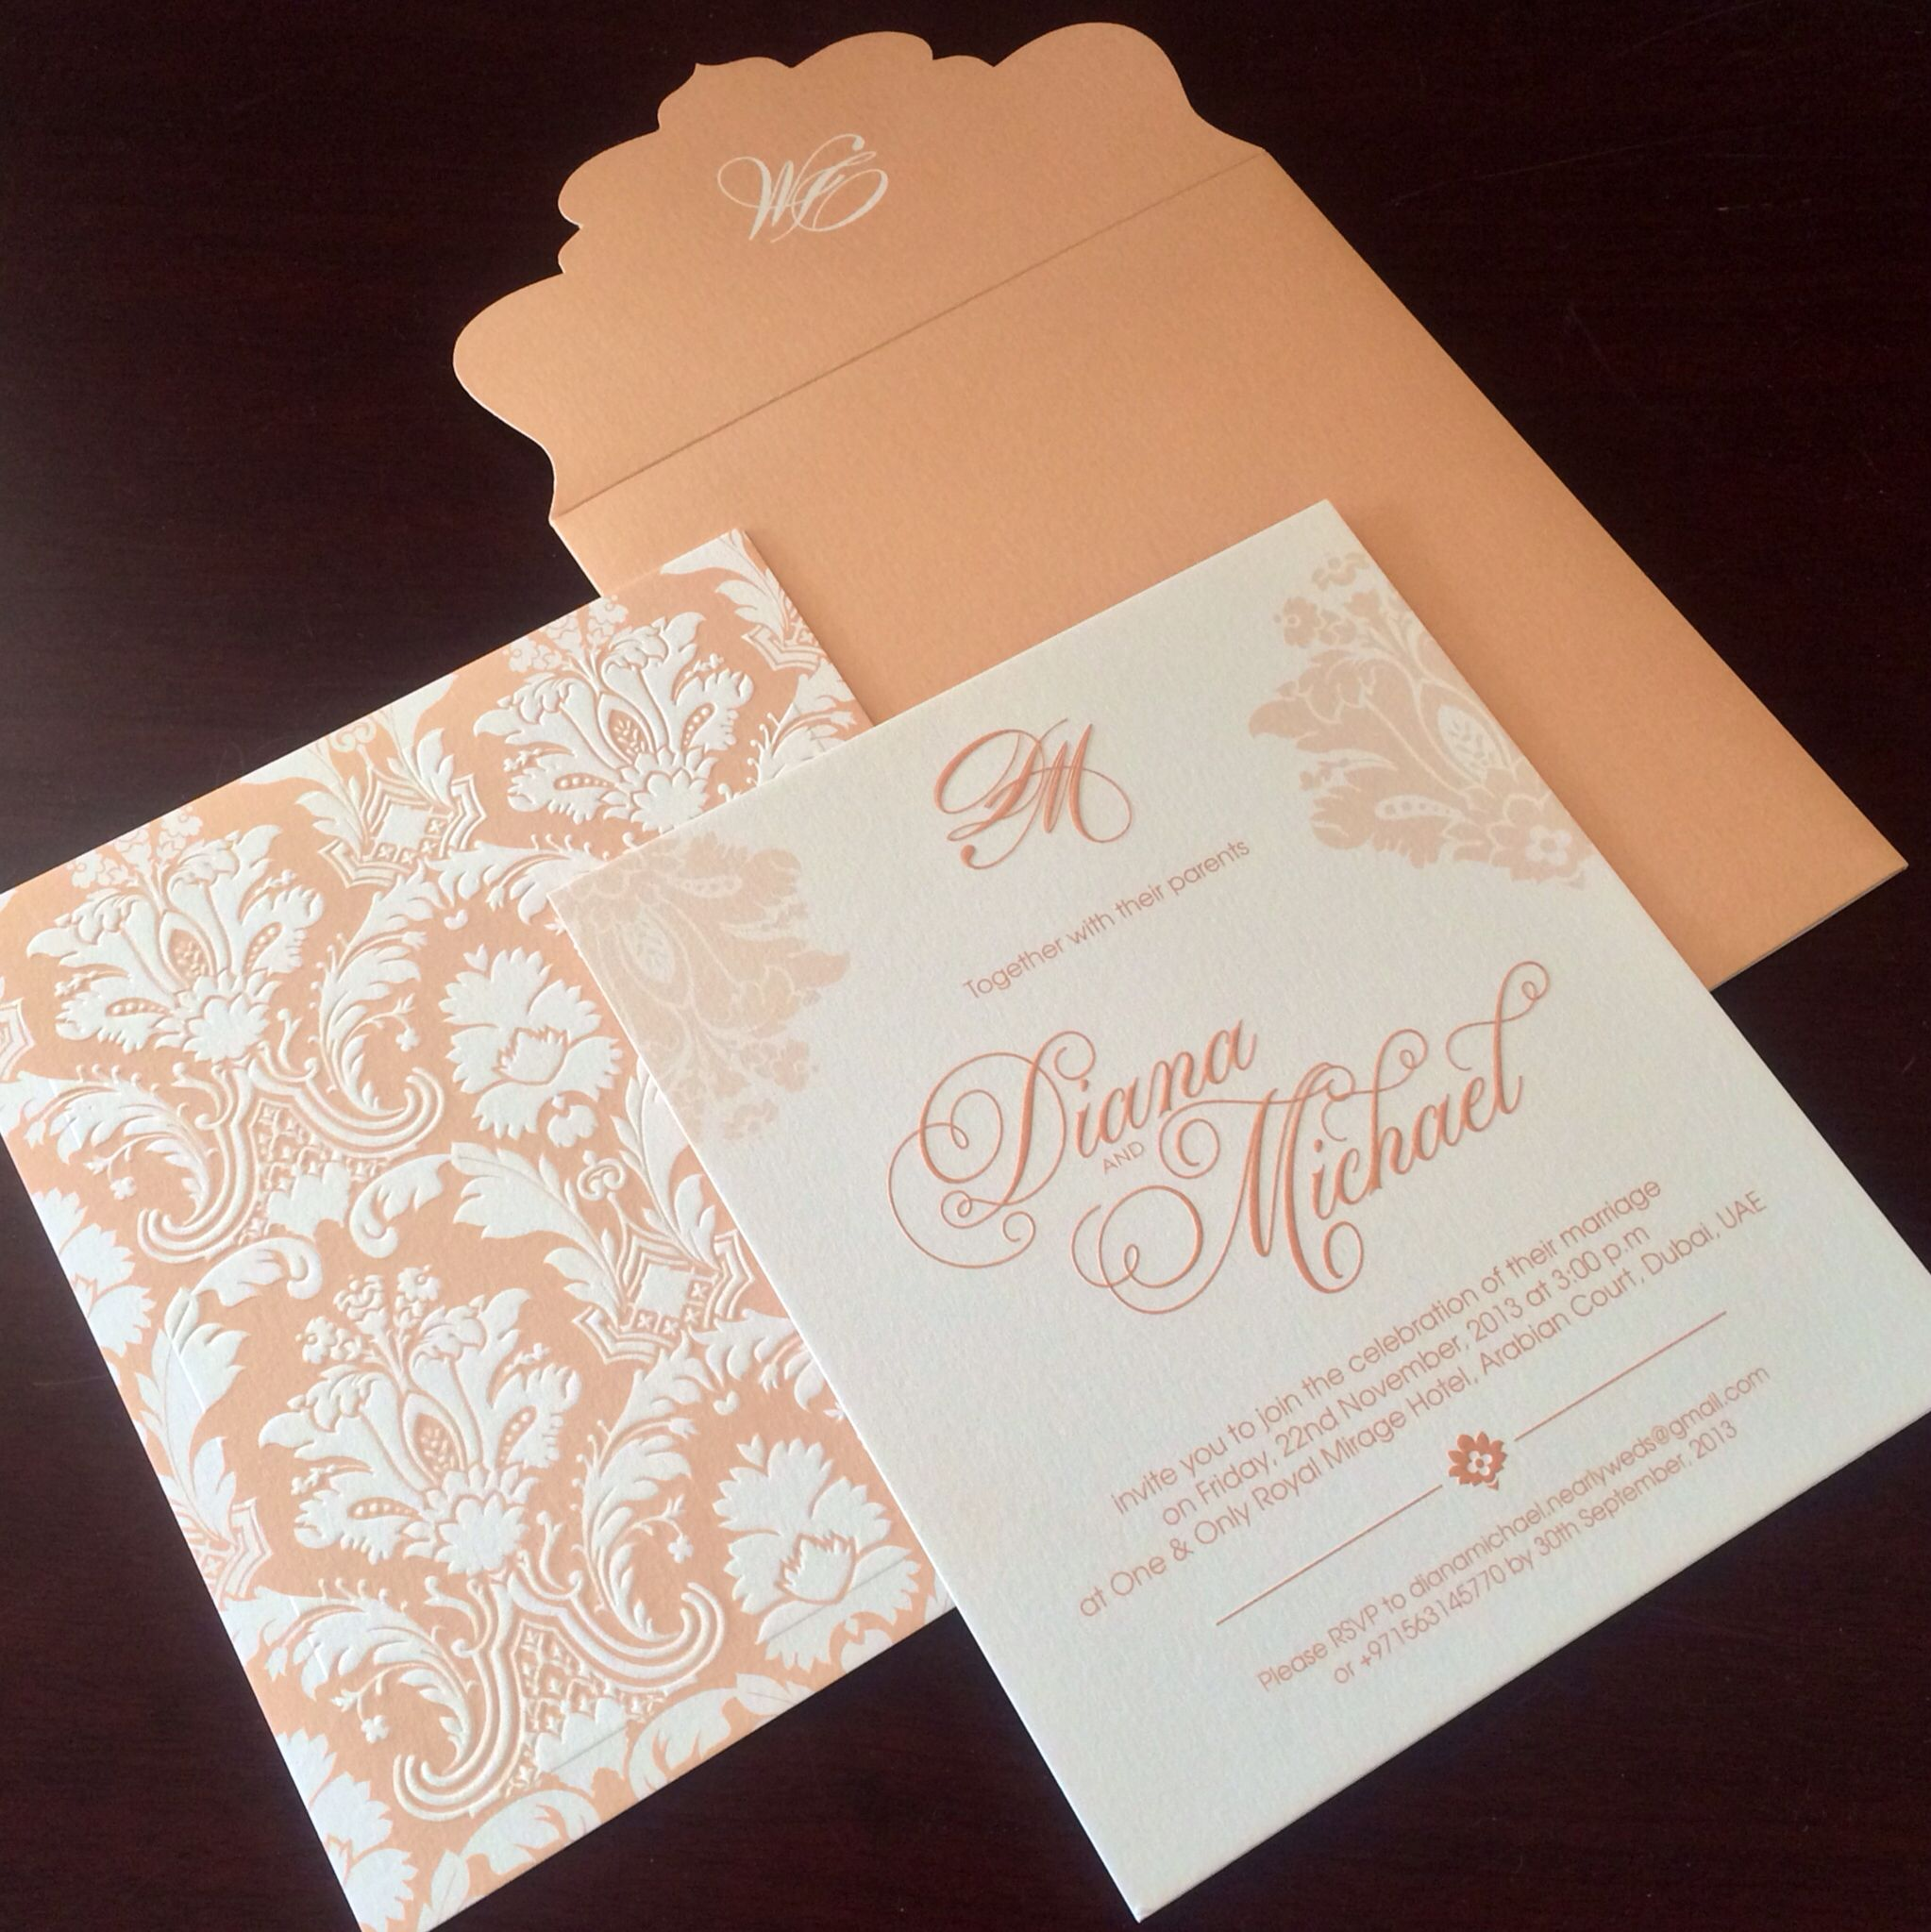 Peach Cream Wedding Invitation Wedding Peach Cream - Birthday invitation maker in dubai